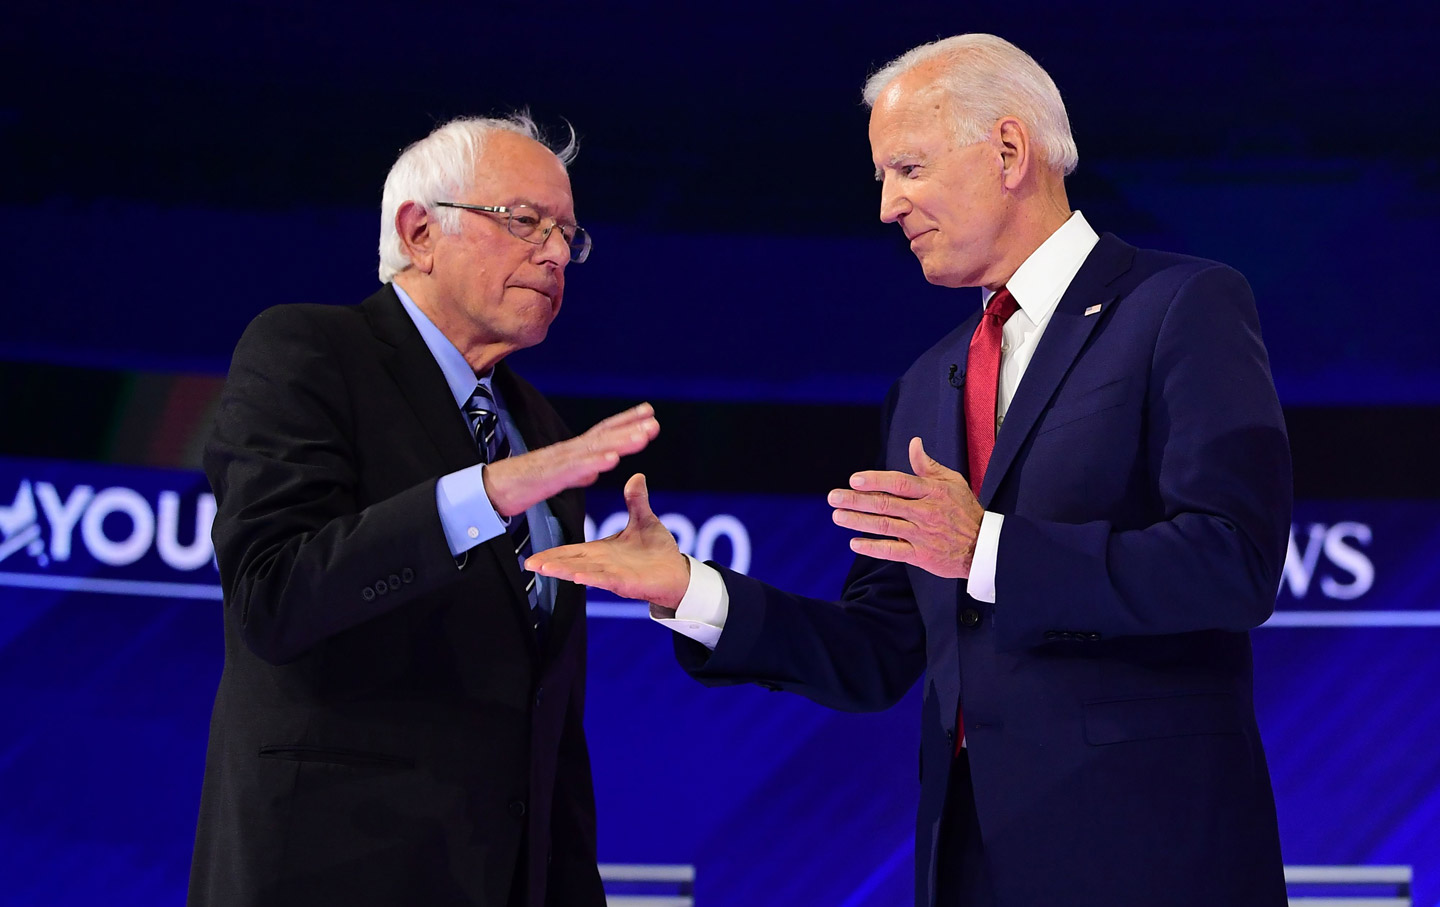 Progressives Should Support Biden Now but Be Ready to Push Later | The Nation